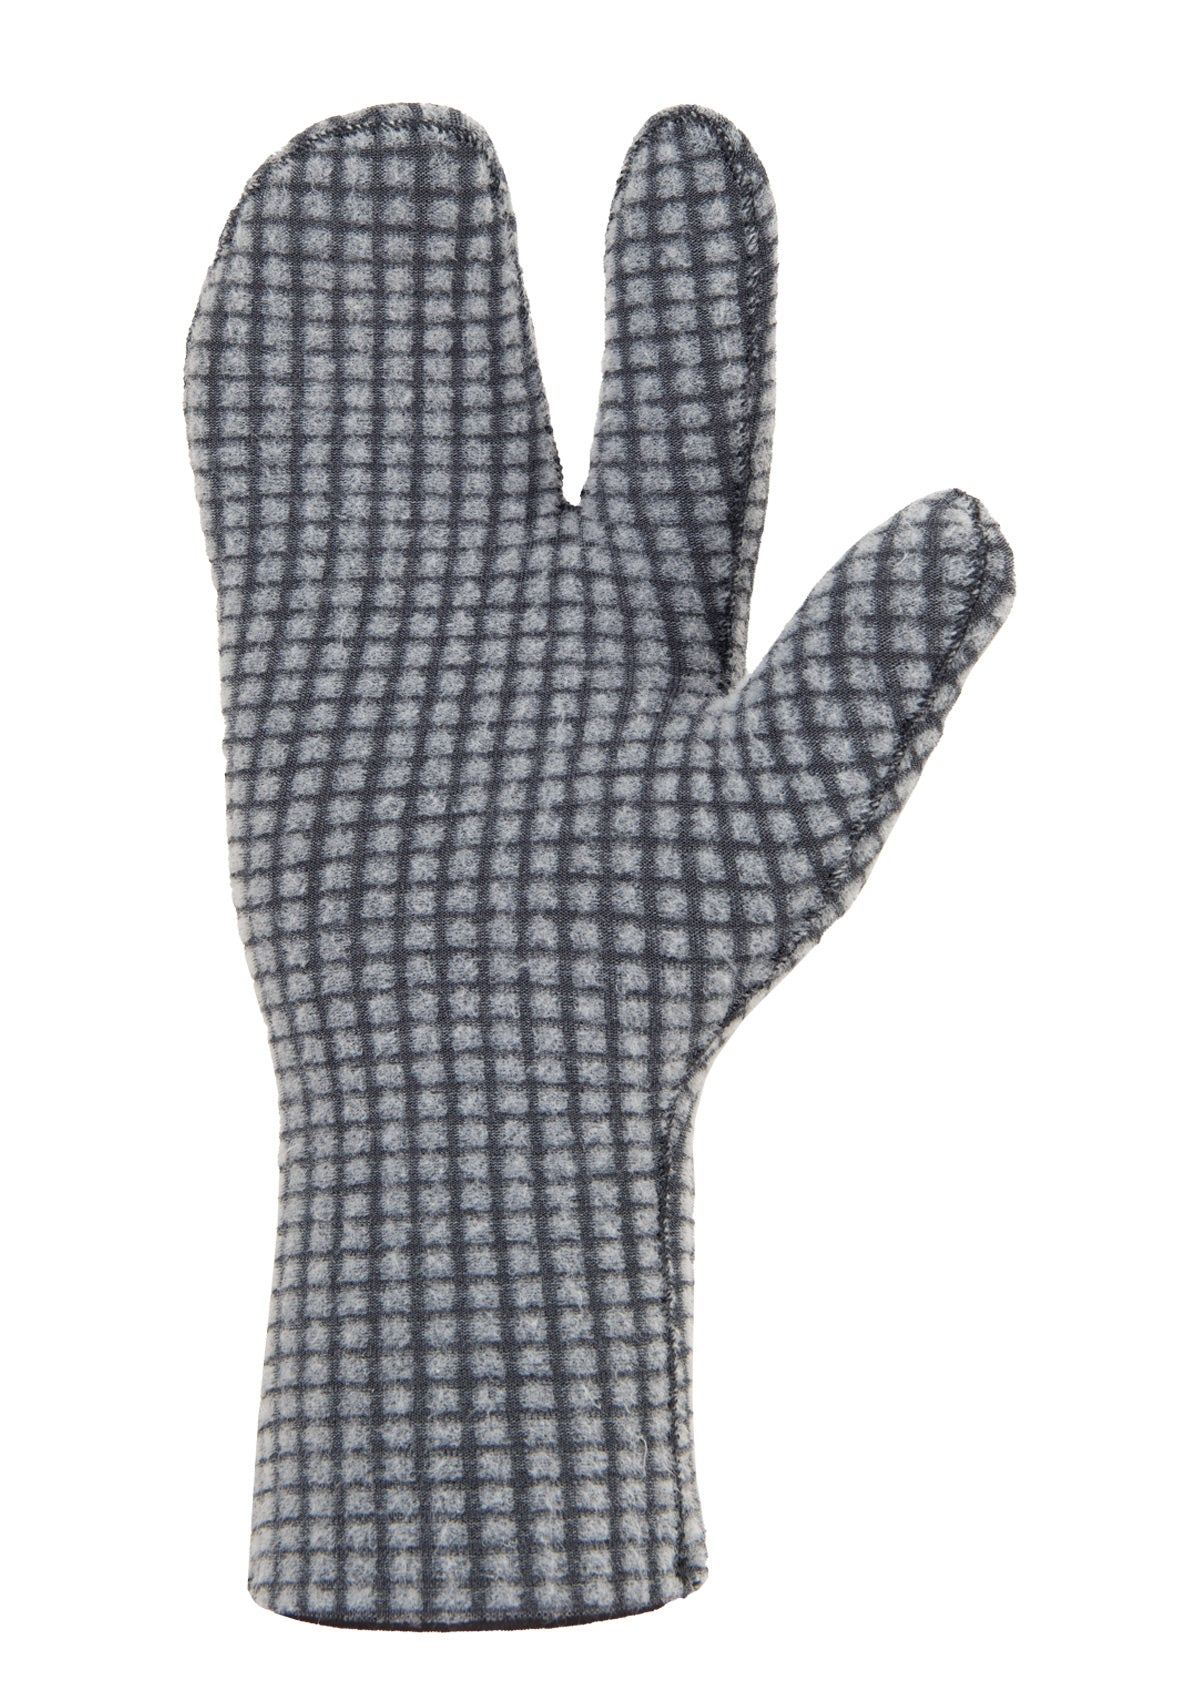 5mm Thermal Mitt